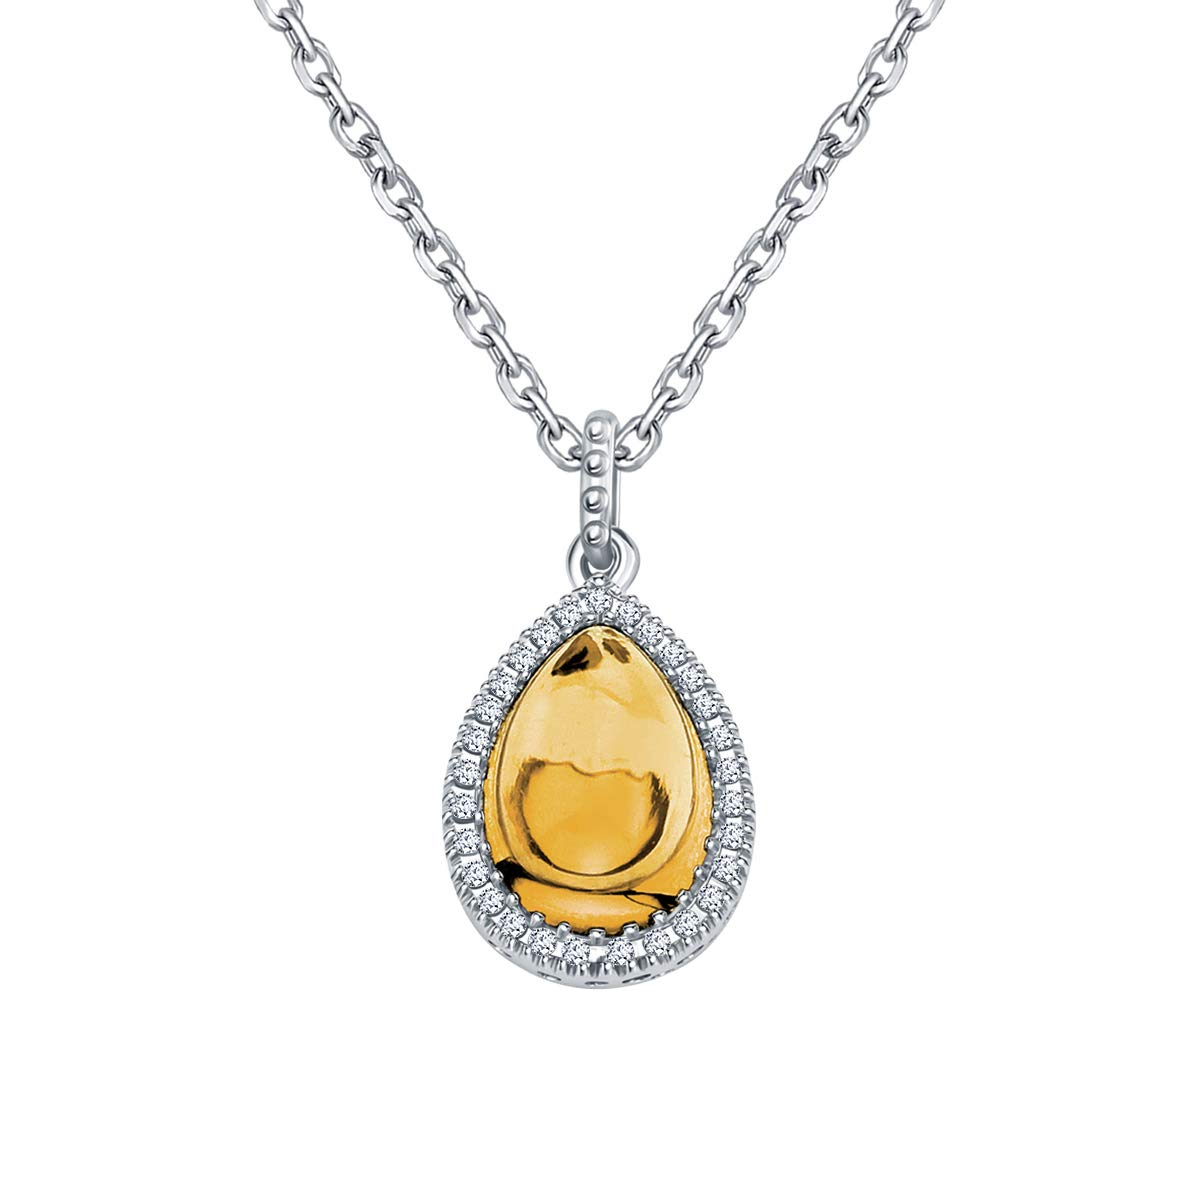 Ringjewels 0.09 Ct Pear Cut Citrine /& Sim Diamond Pendant with 18 Chain in 14K White Gold Plated 925